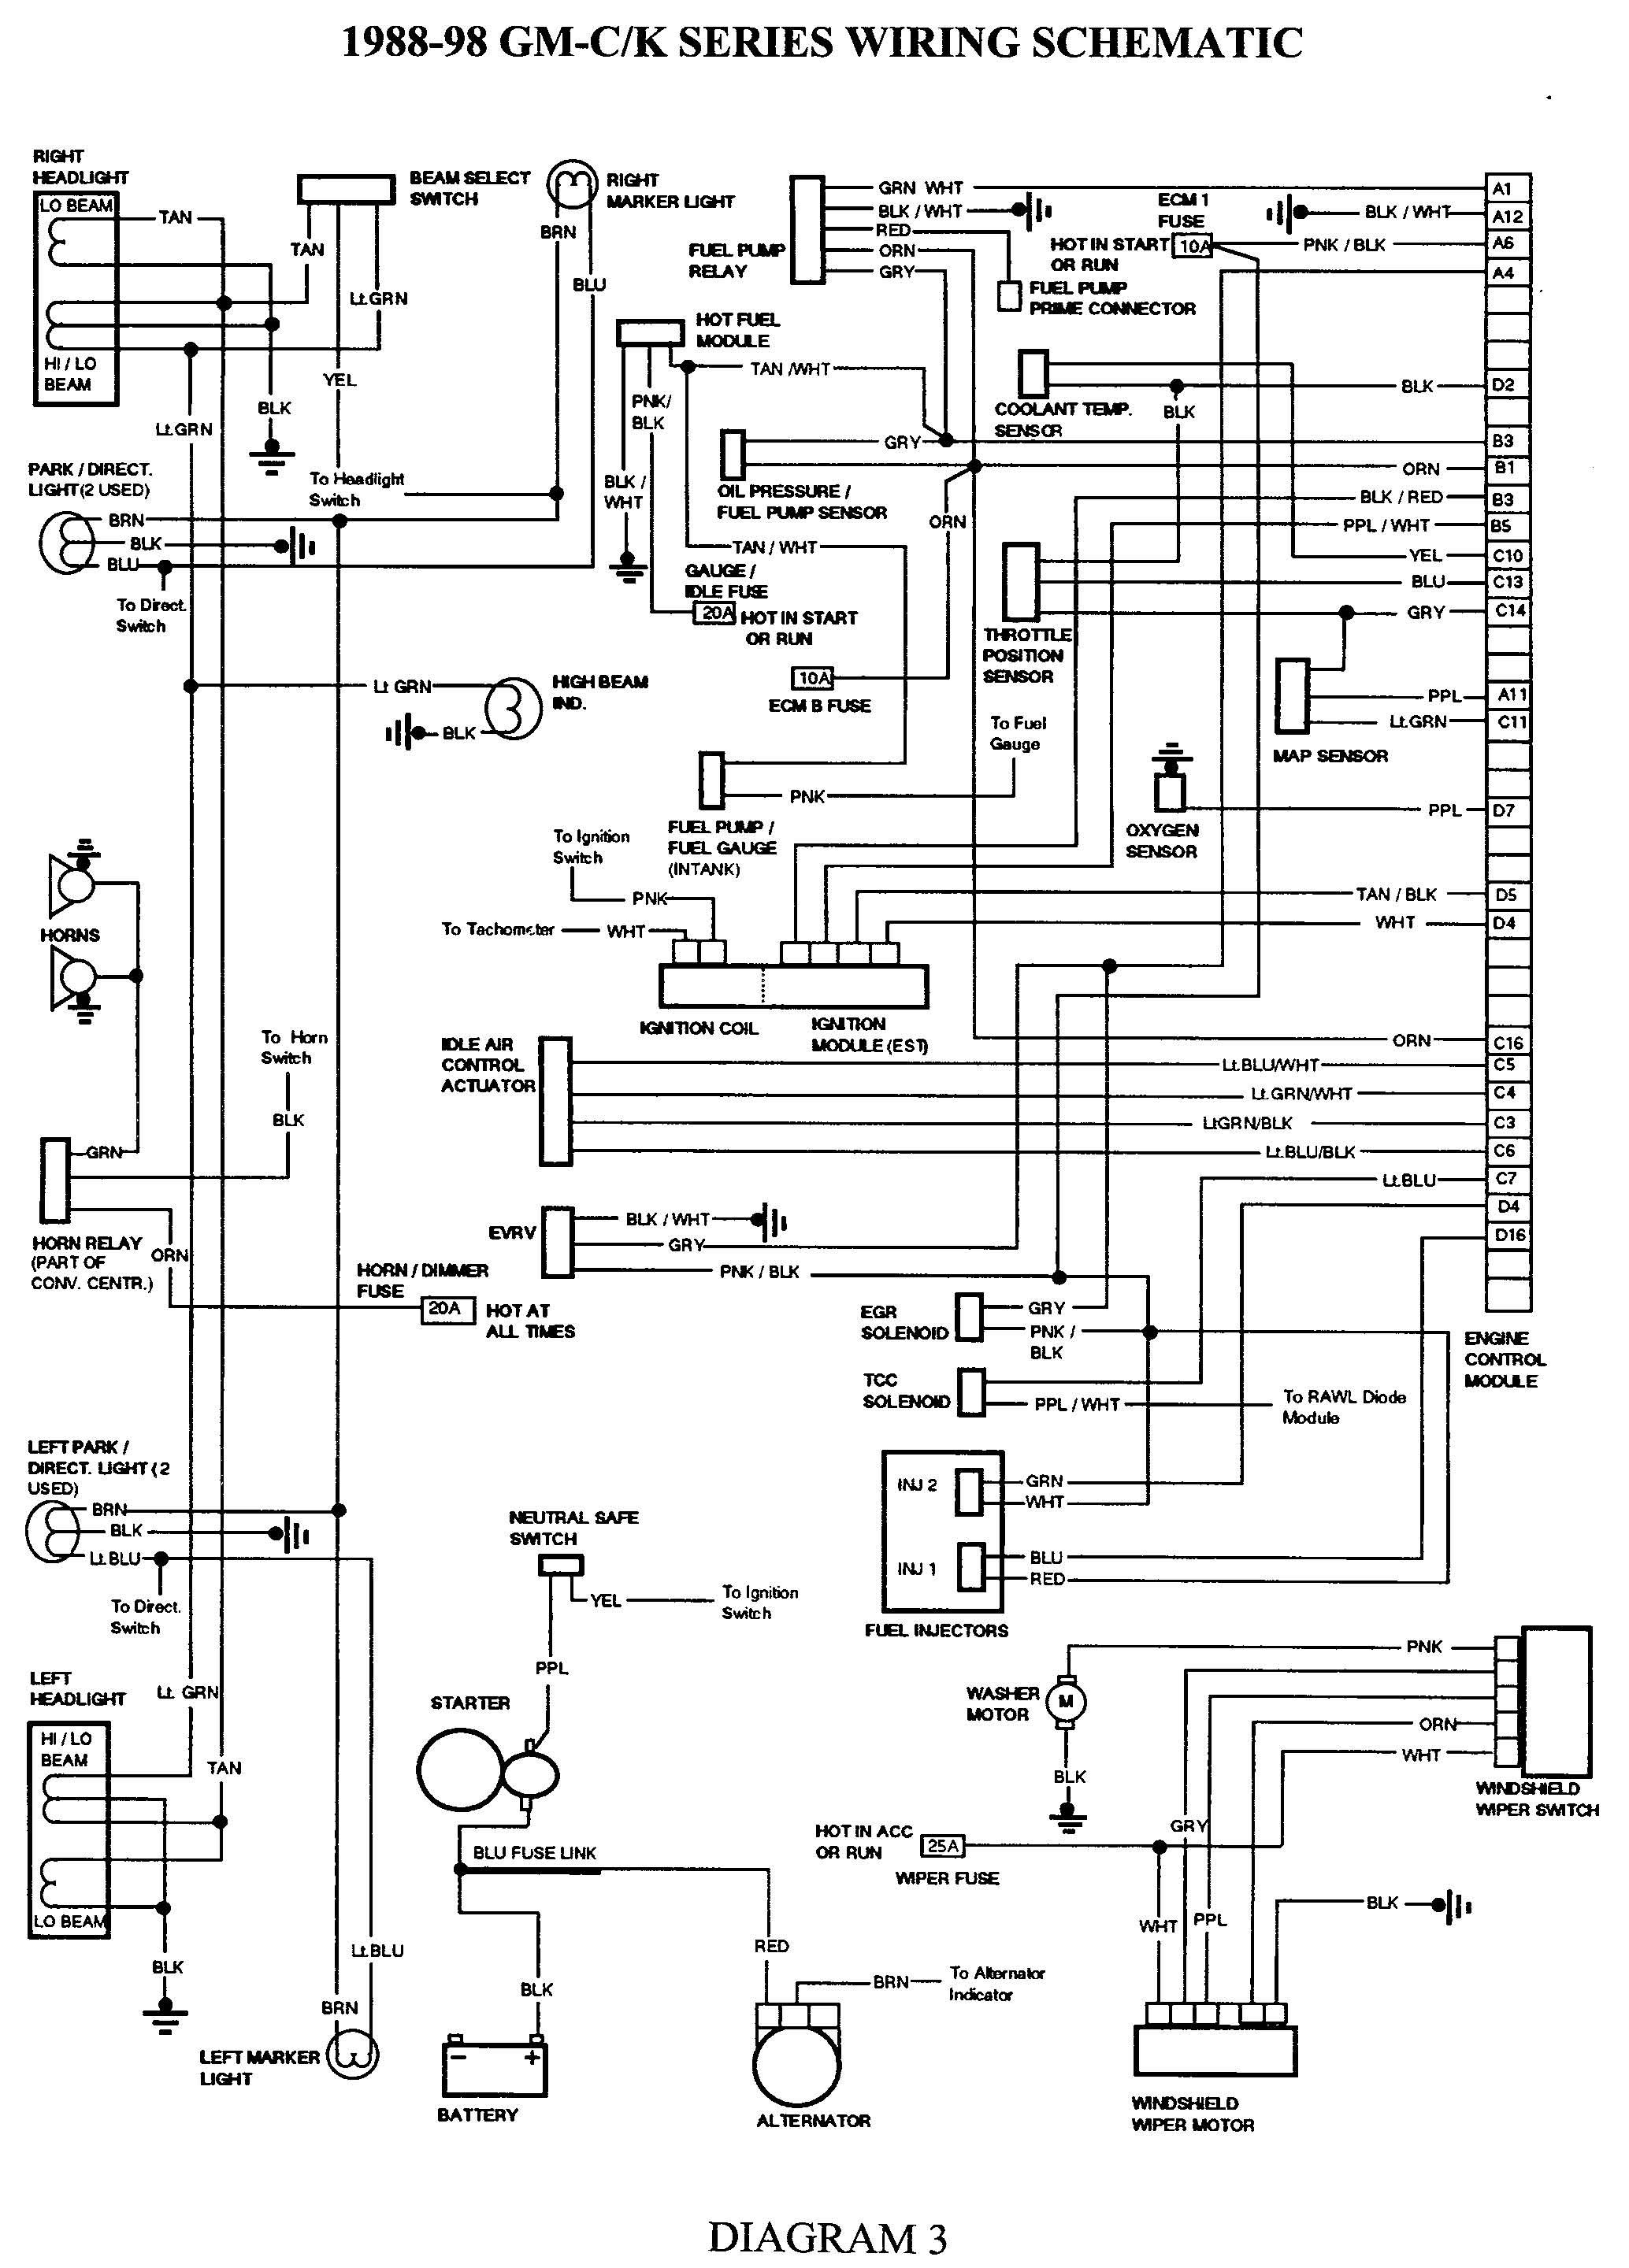 94 F150 Window Wiring Diagram Services 1984 Headlight Blazer Full Size Electrical Work Rh Wiringdiagramshop Today Alternator